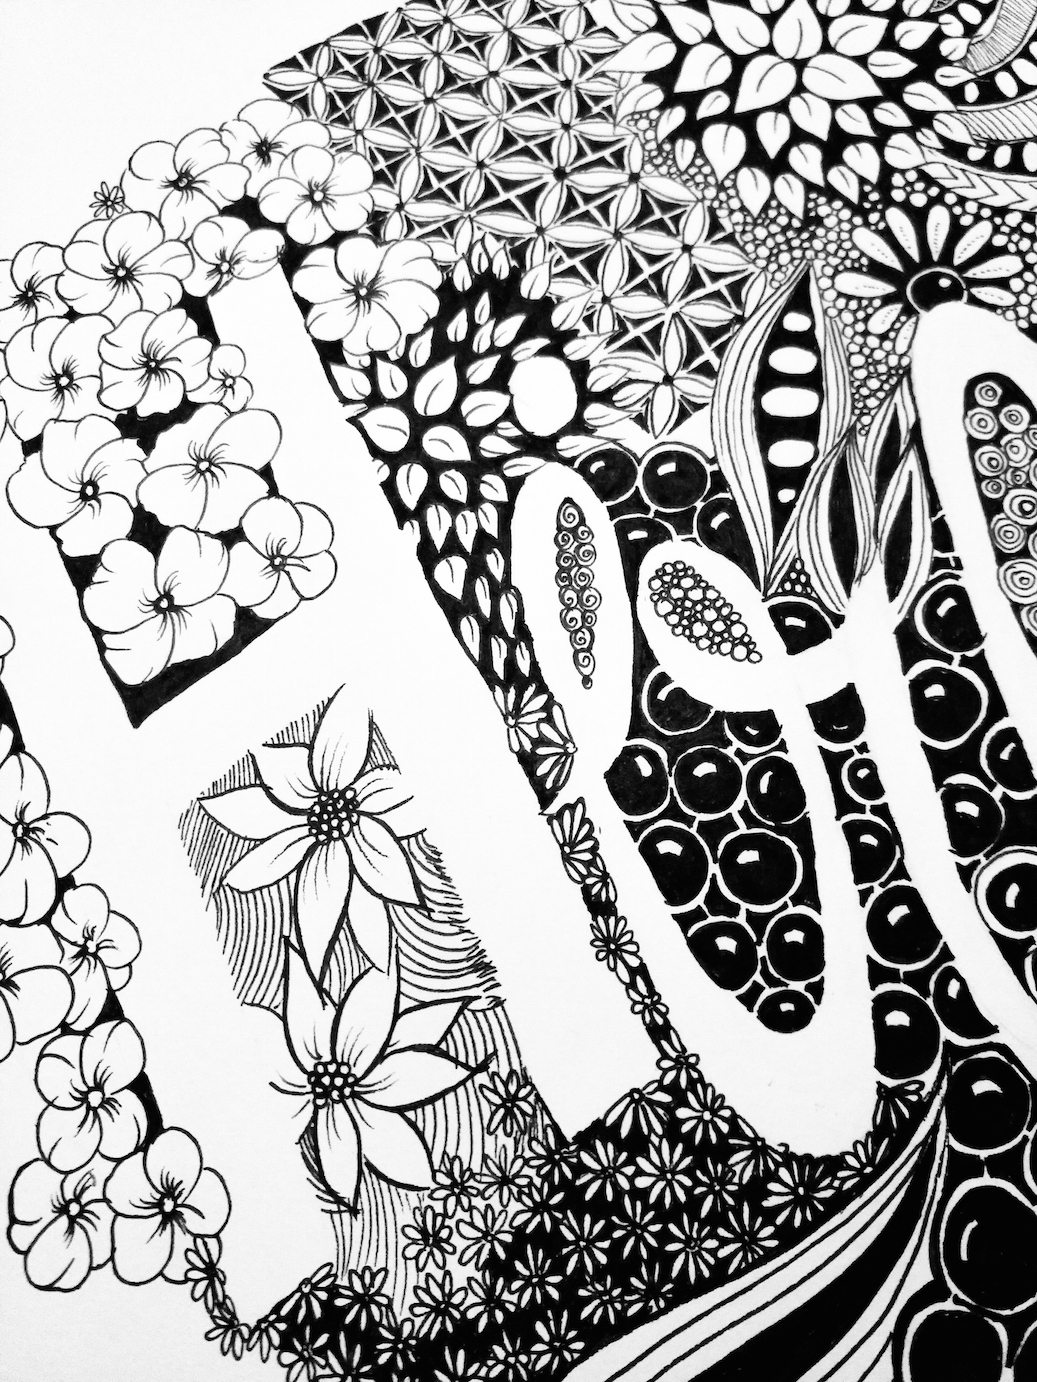 Zentangle Designs and Patterns | Typography | Hiraeth